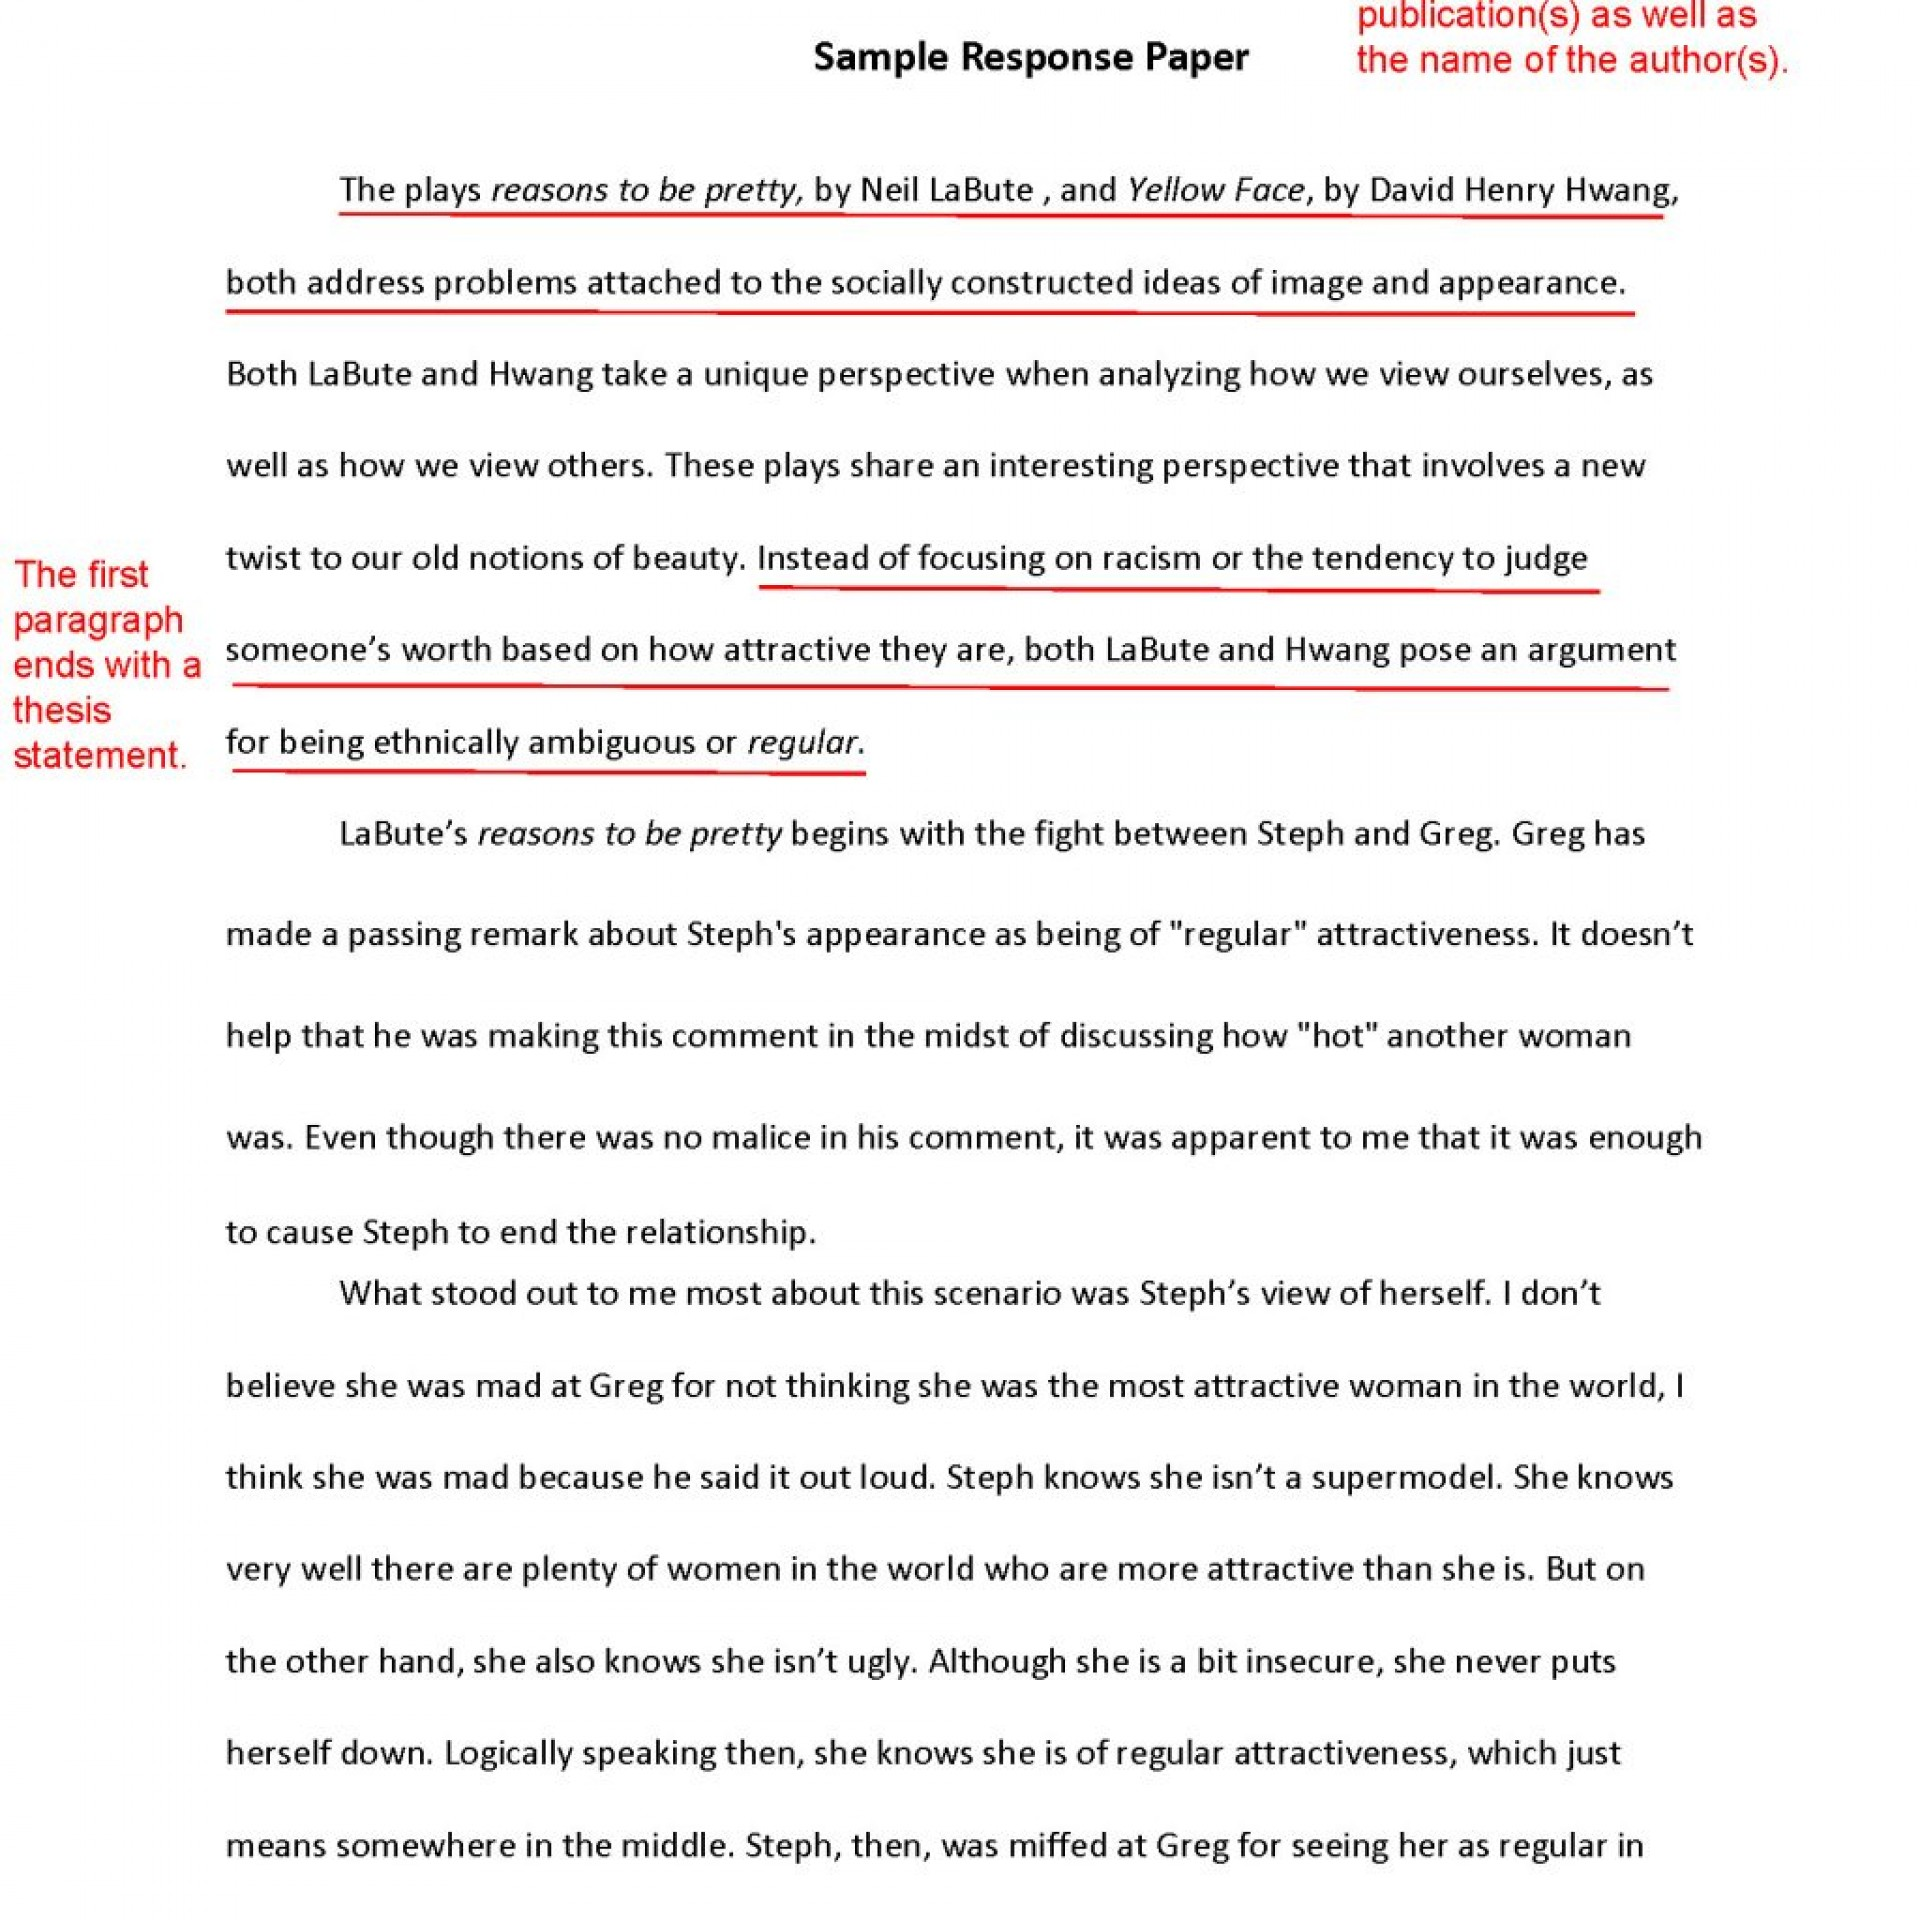 020 20research Paper Samples20troduction Format Apa Example Pdf Mla20 1024x1024 Research Good Remarkable Examples Experimental Sample Philippines Introductions For Papers 1920